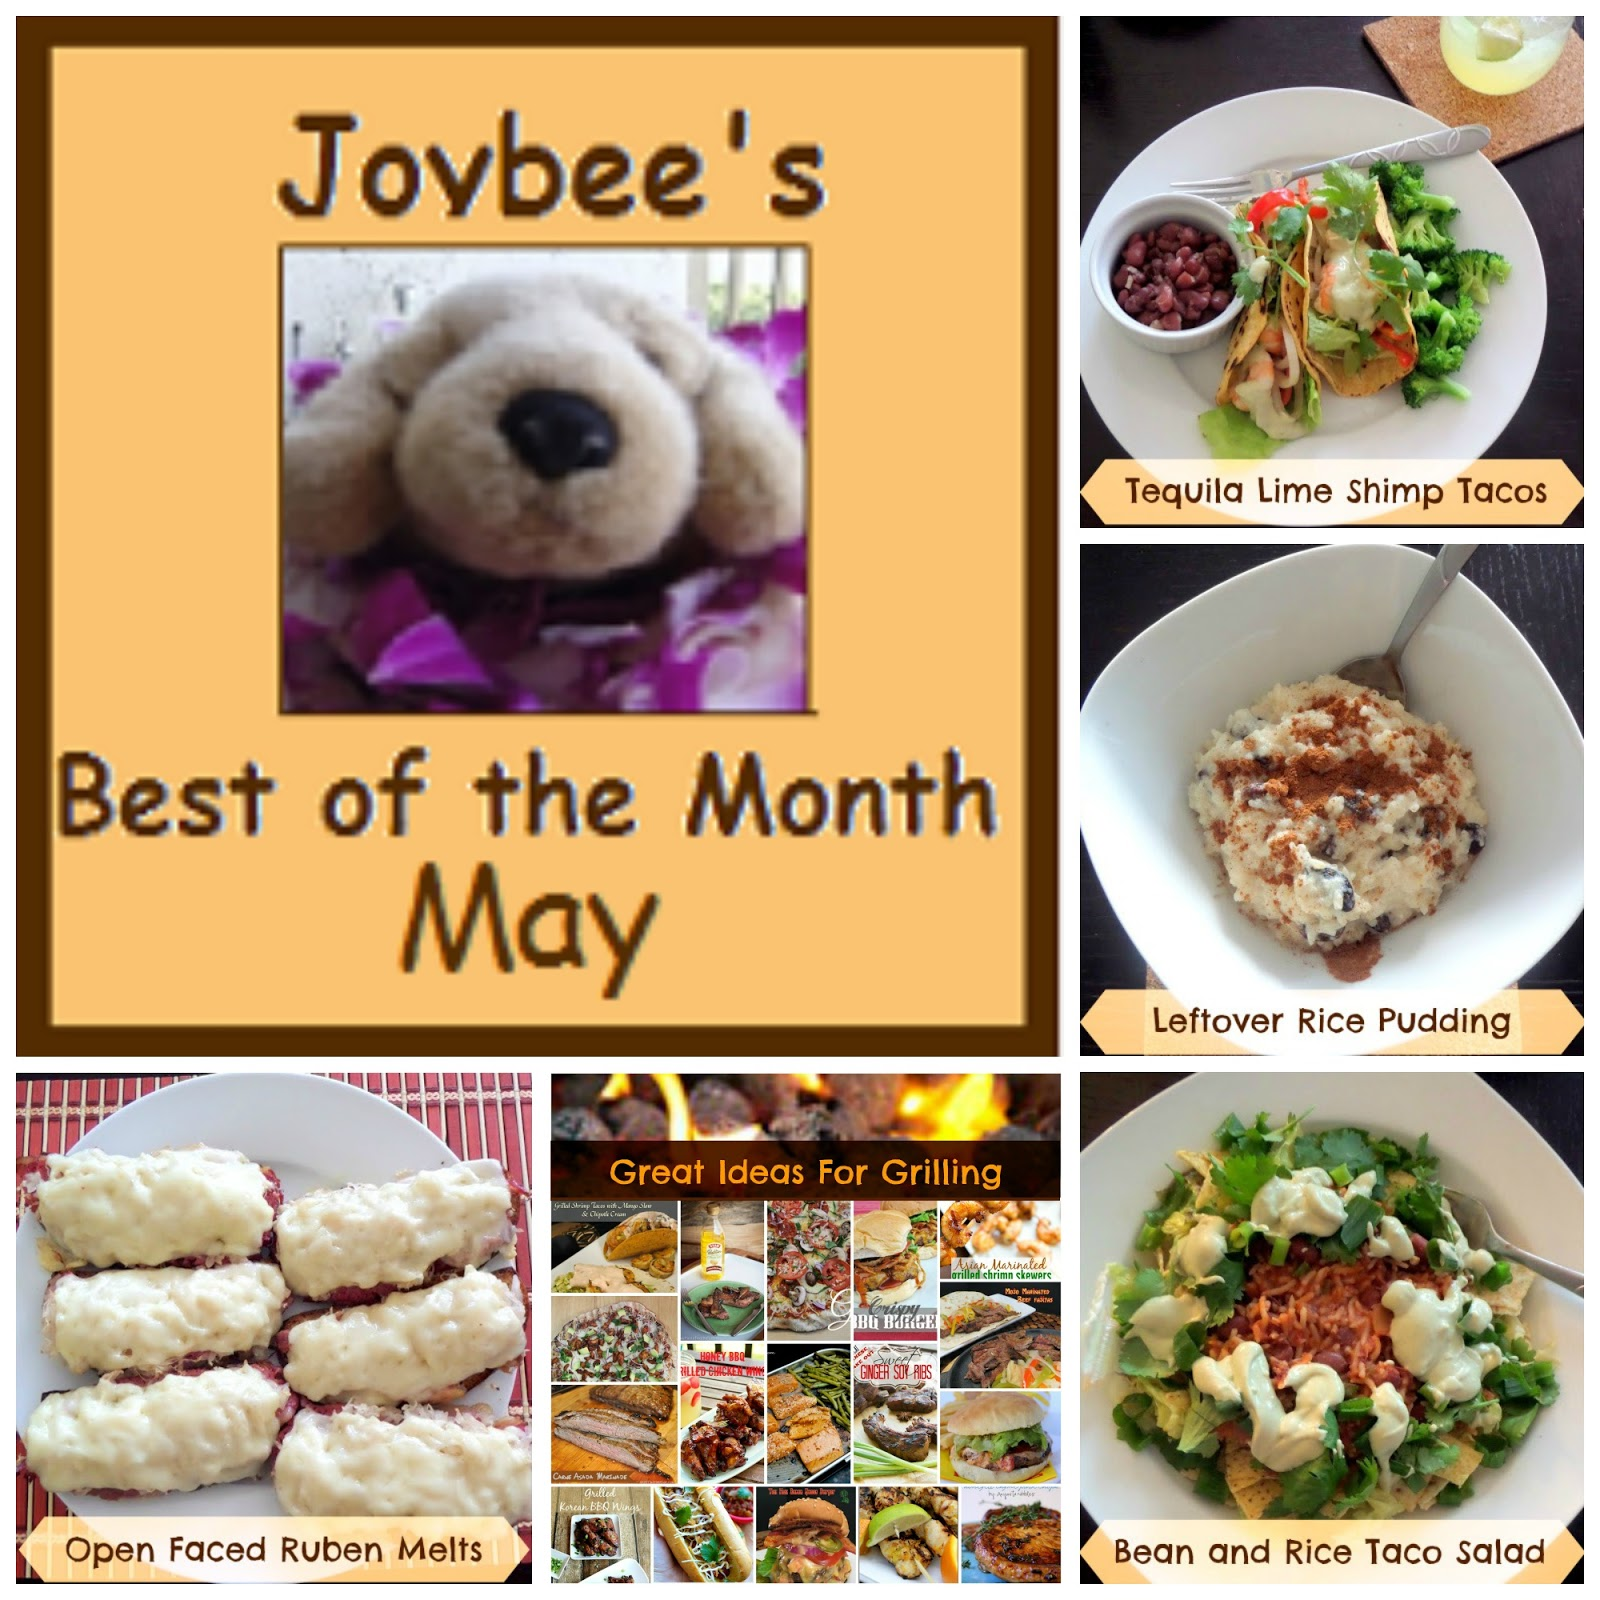 Best of the Month May 2014:  A recap of my most popular posts from last month (May 2014)